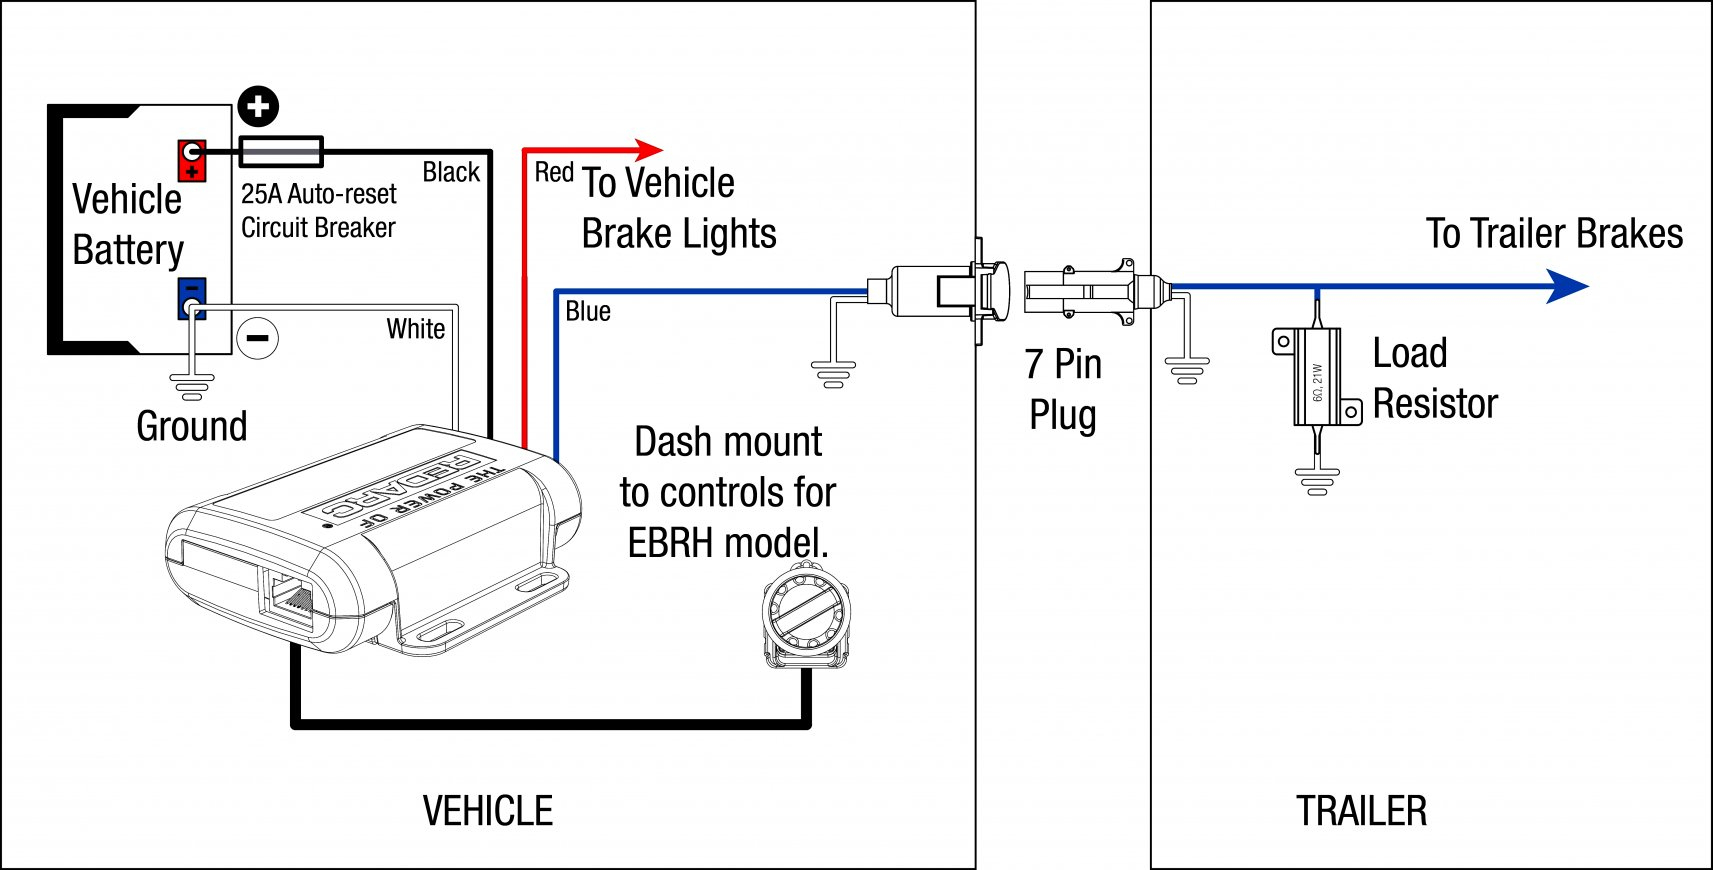 Unique Of Wiring Diagram For Electric Brake Controller Control Bg - Wiring Diagram For Trailer Brakes